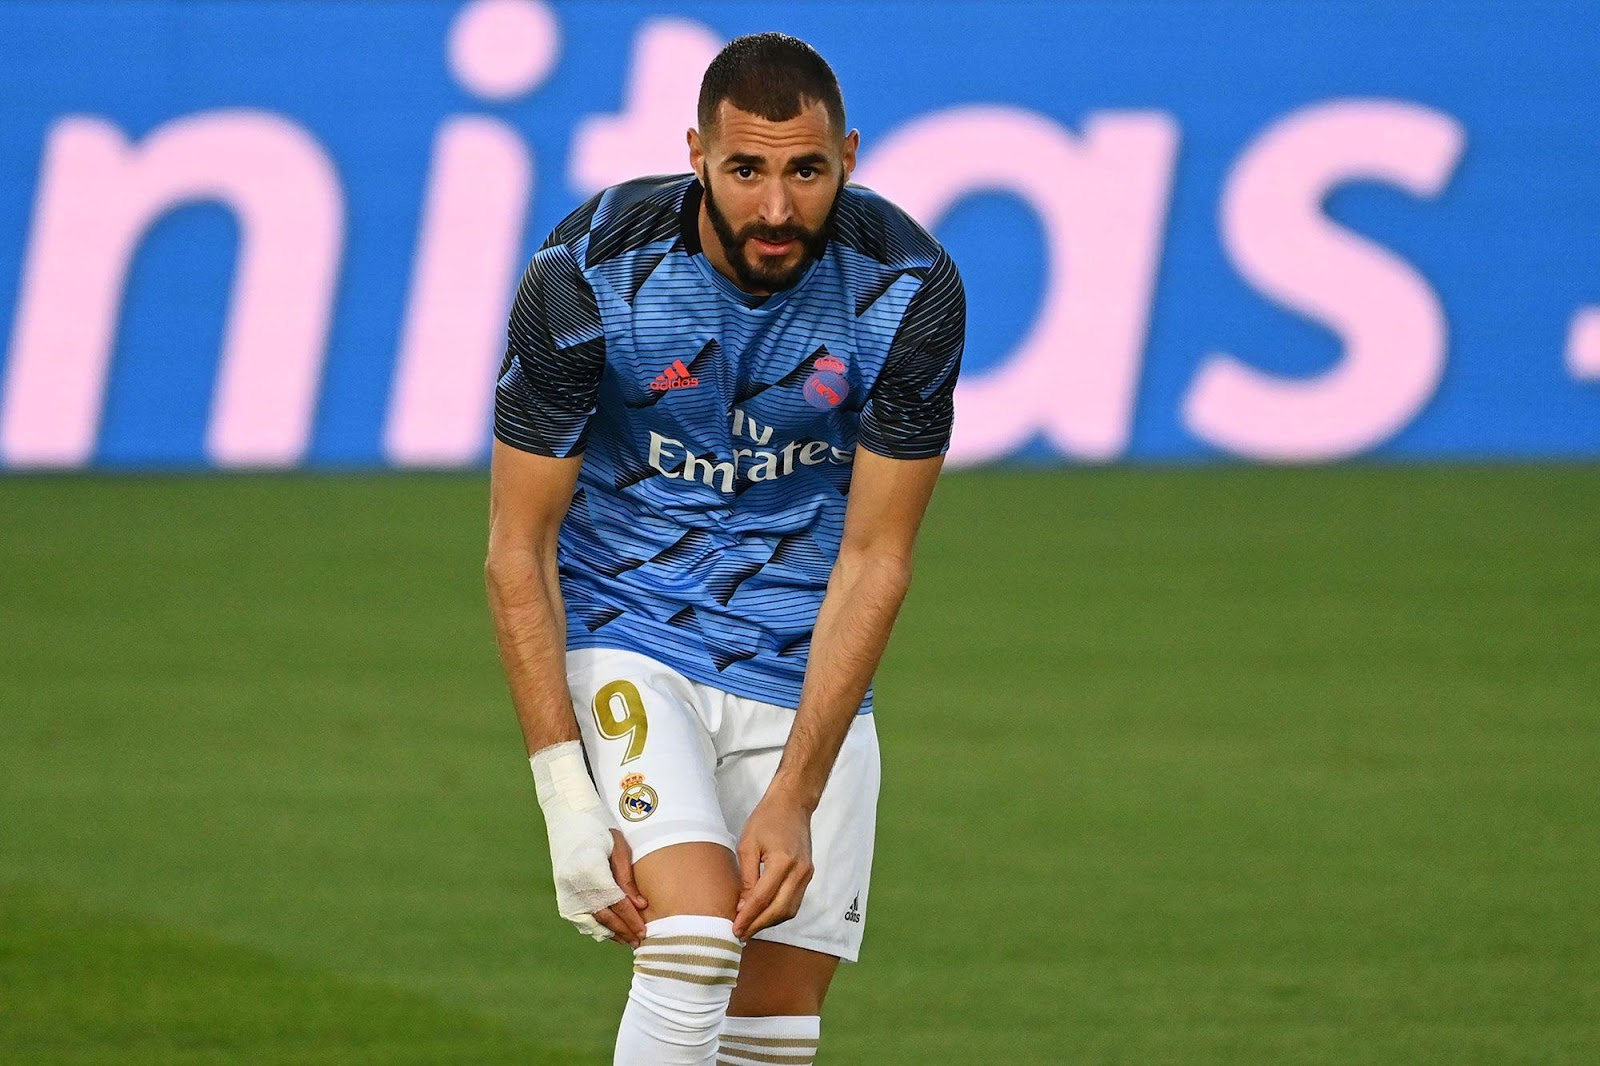 Real Madrid's Karim Benzema faces trial in sex tape scandal